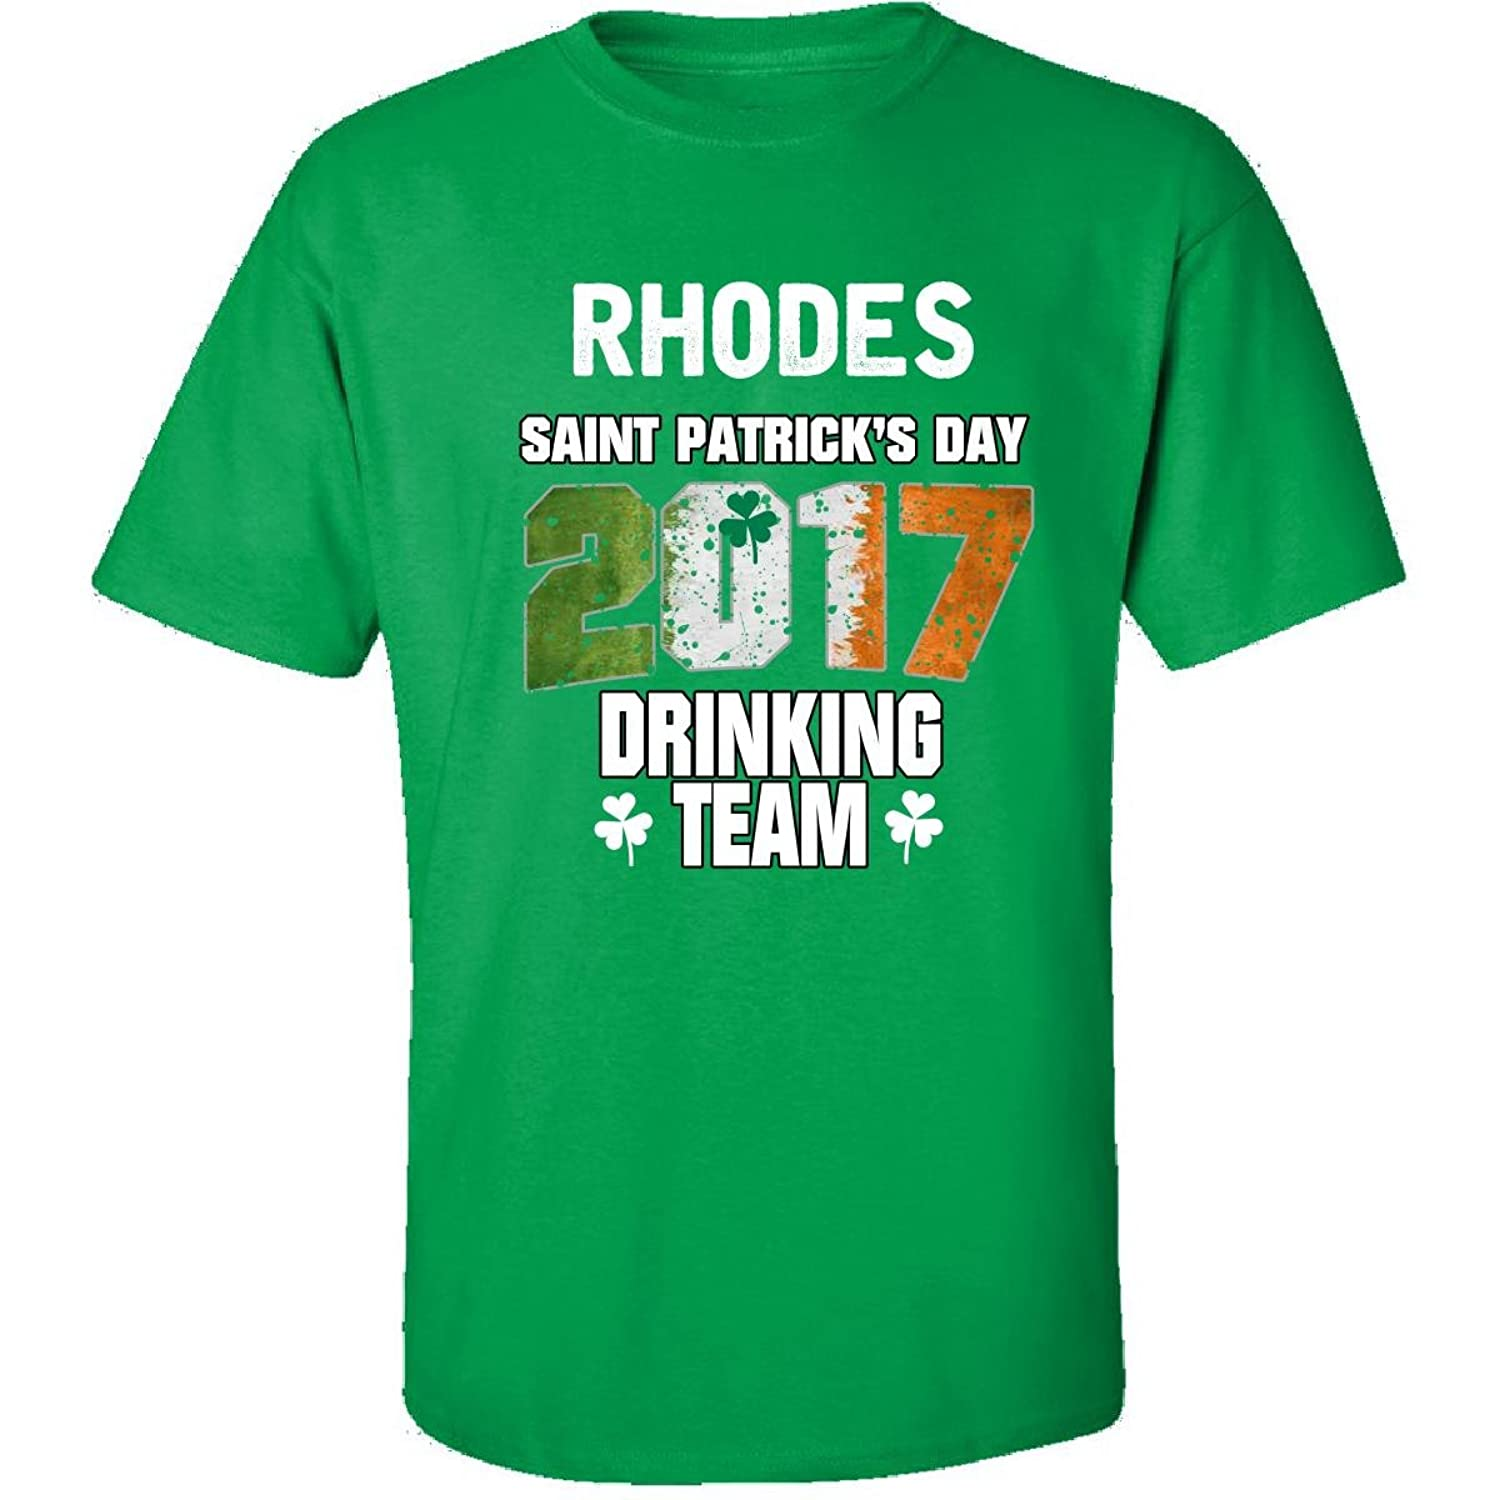 Rhodes Irish St Patricks Day 2017 Drinking Team - Adult Shirt